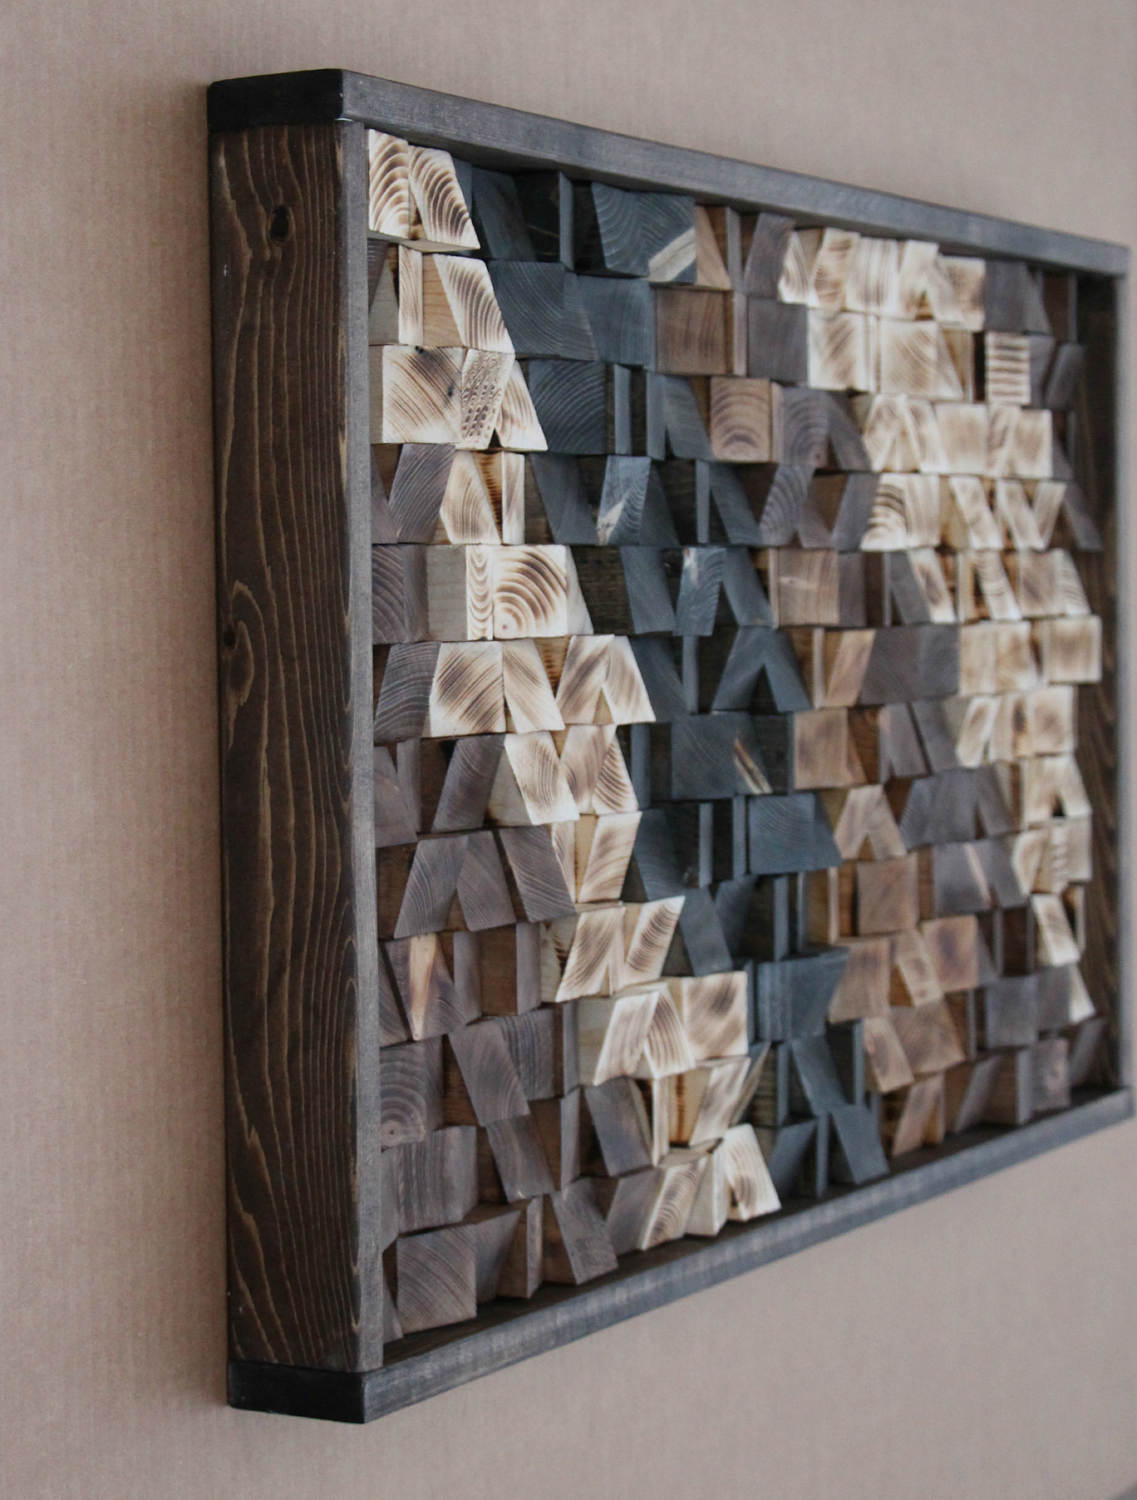 Large Reclaimed Wood Wall Art Decor Headboard Geometric Pattern Mosaic 17x30 Gbandwood Wooden